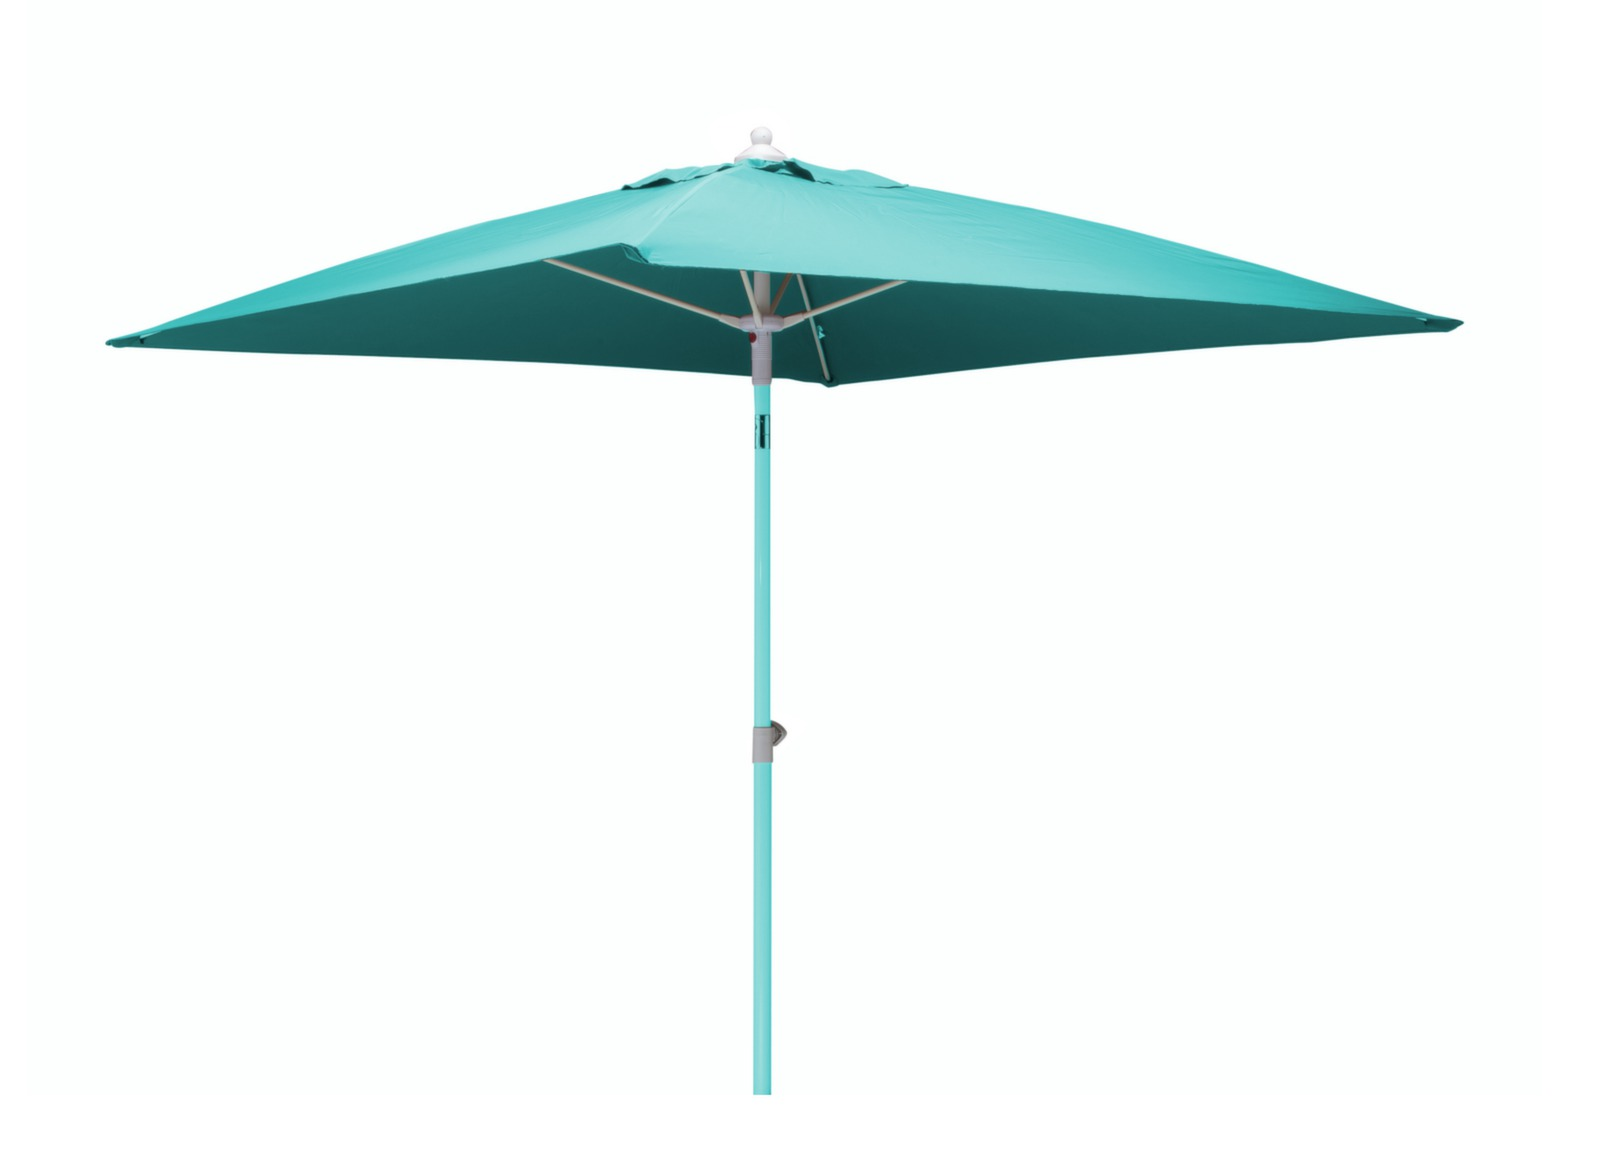 Parasol deporte inclinable fabulous parasol dport rhodos - Parasol deporte inclinable leroy merlin ...